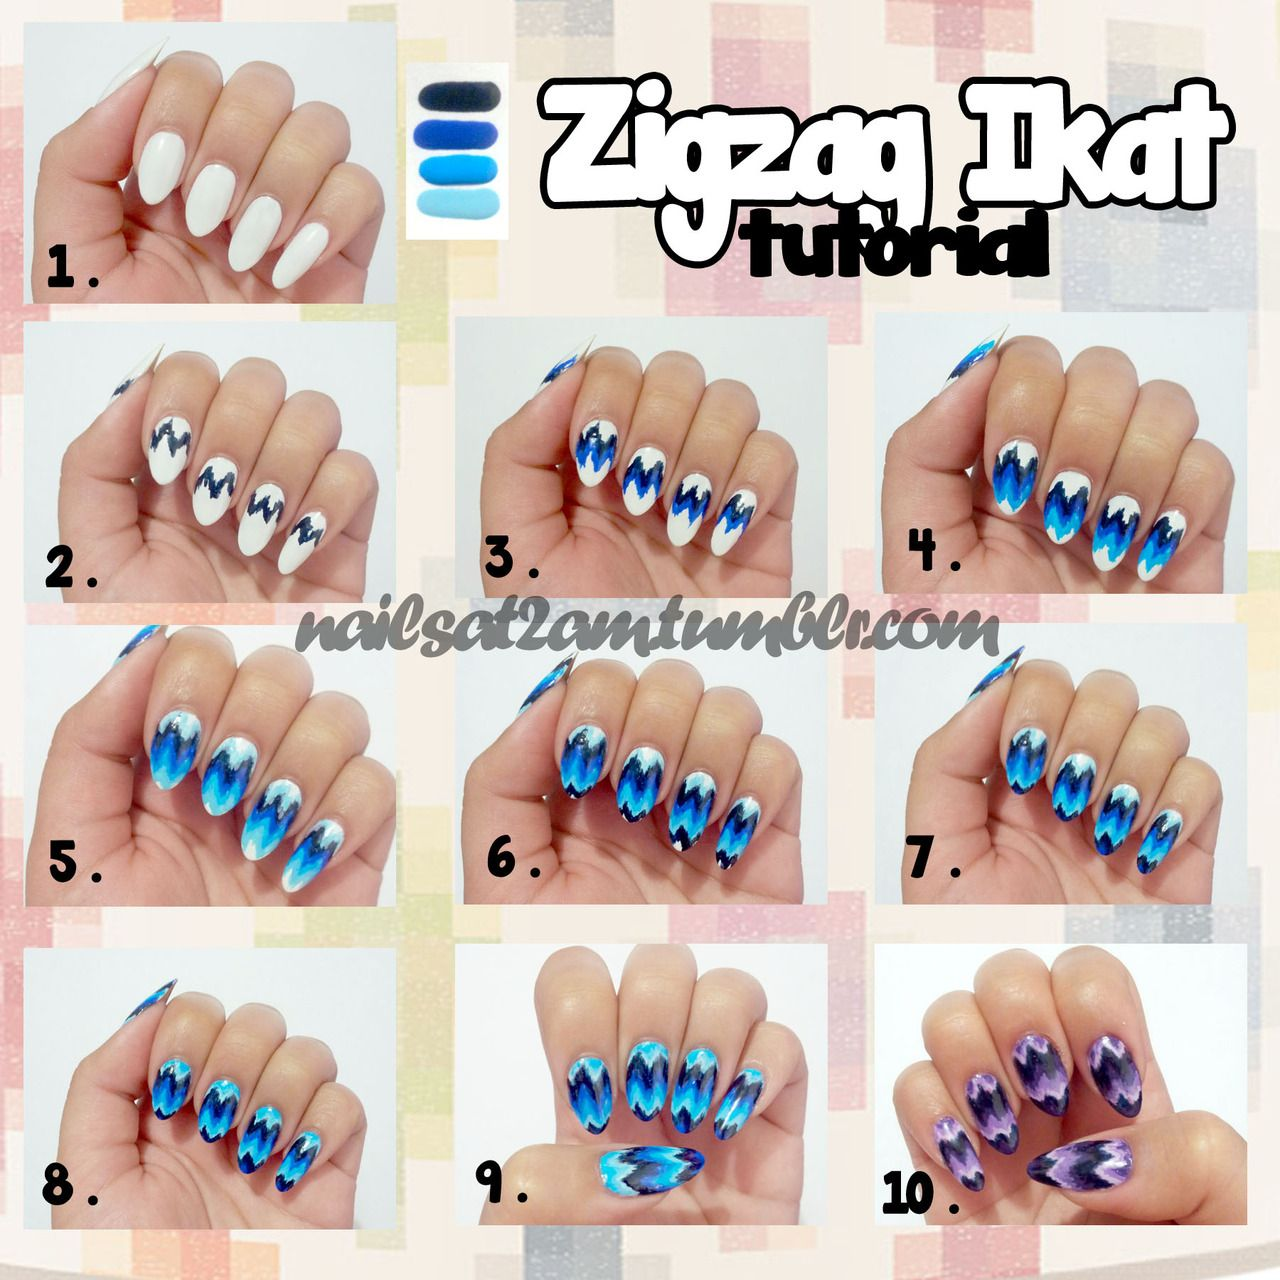 Zigzag ikat nail tutorial by nails at 2 am the beauty of nail zigzag ikat nail tutorial have ready 4 different shades of blue or other polish a white polish top coat and a striping brush thin paint brush prinsesfo Gallery